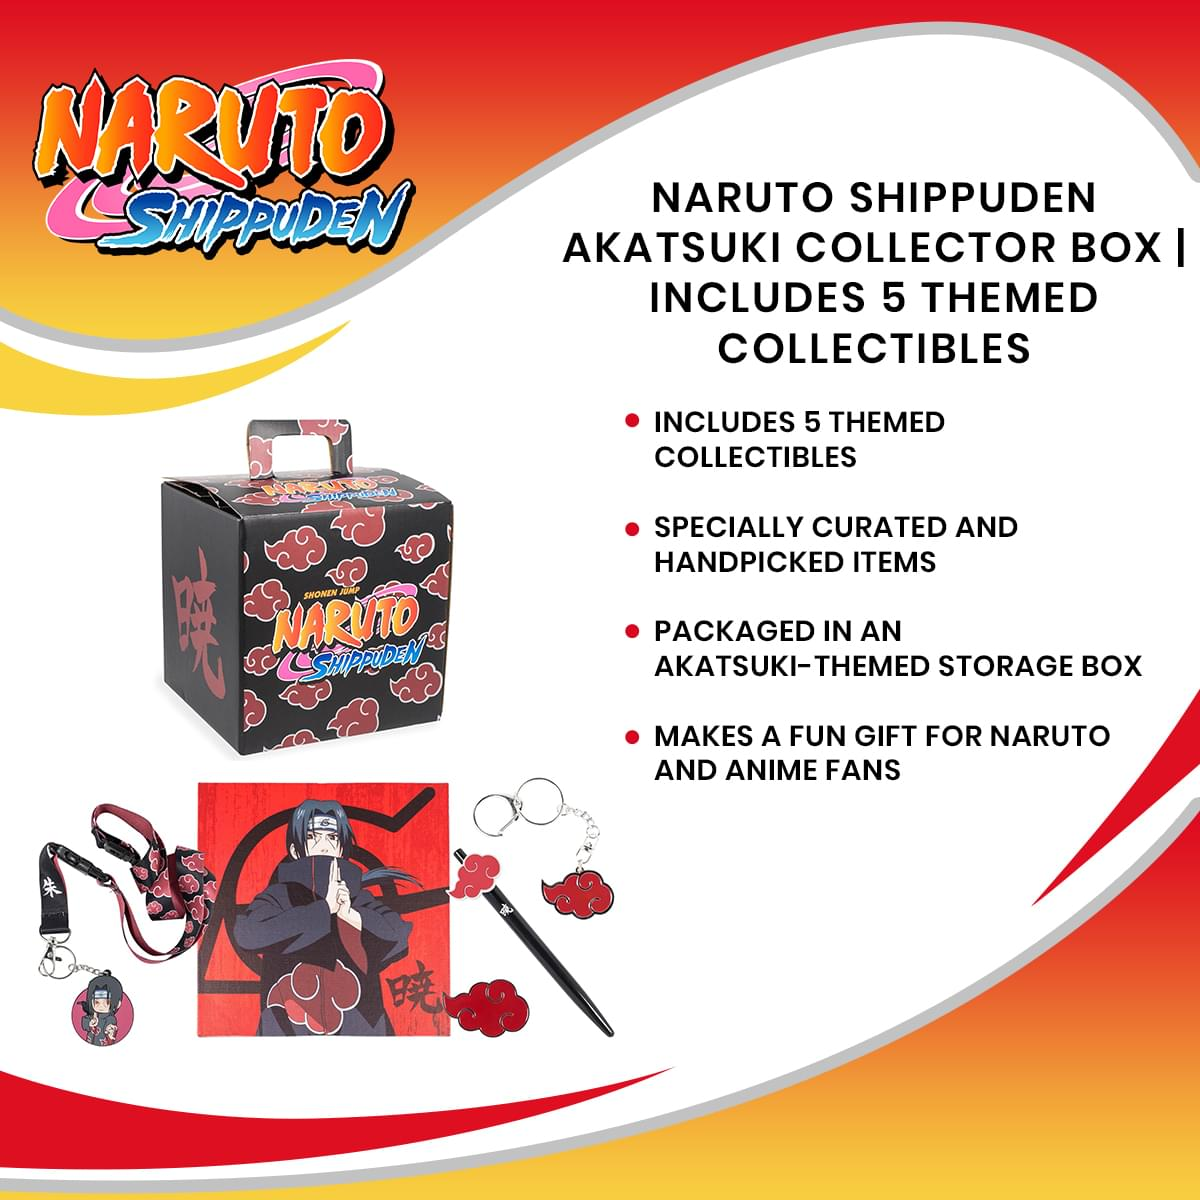 Naruto Shippuden Akatsuki Collector Looksee Box | Includes 5 Themed Collectibles